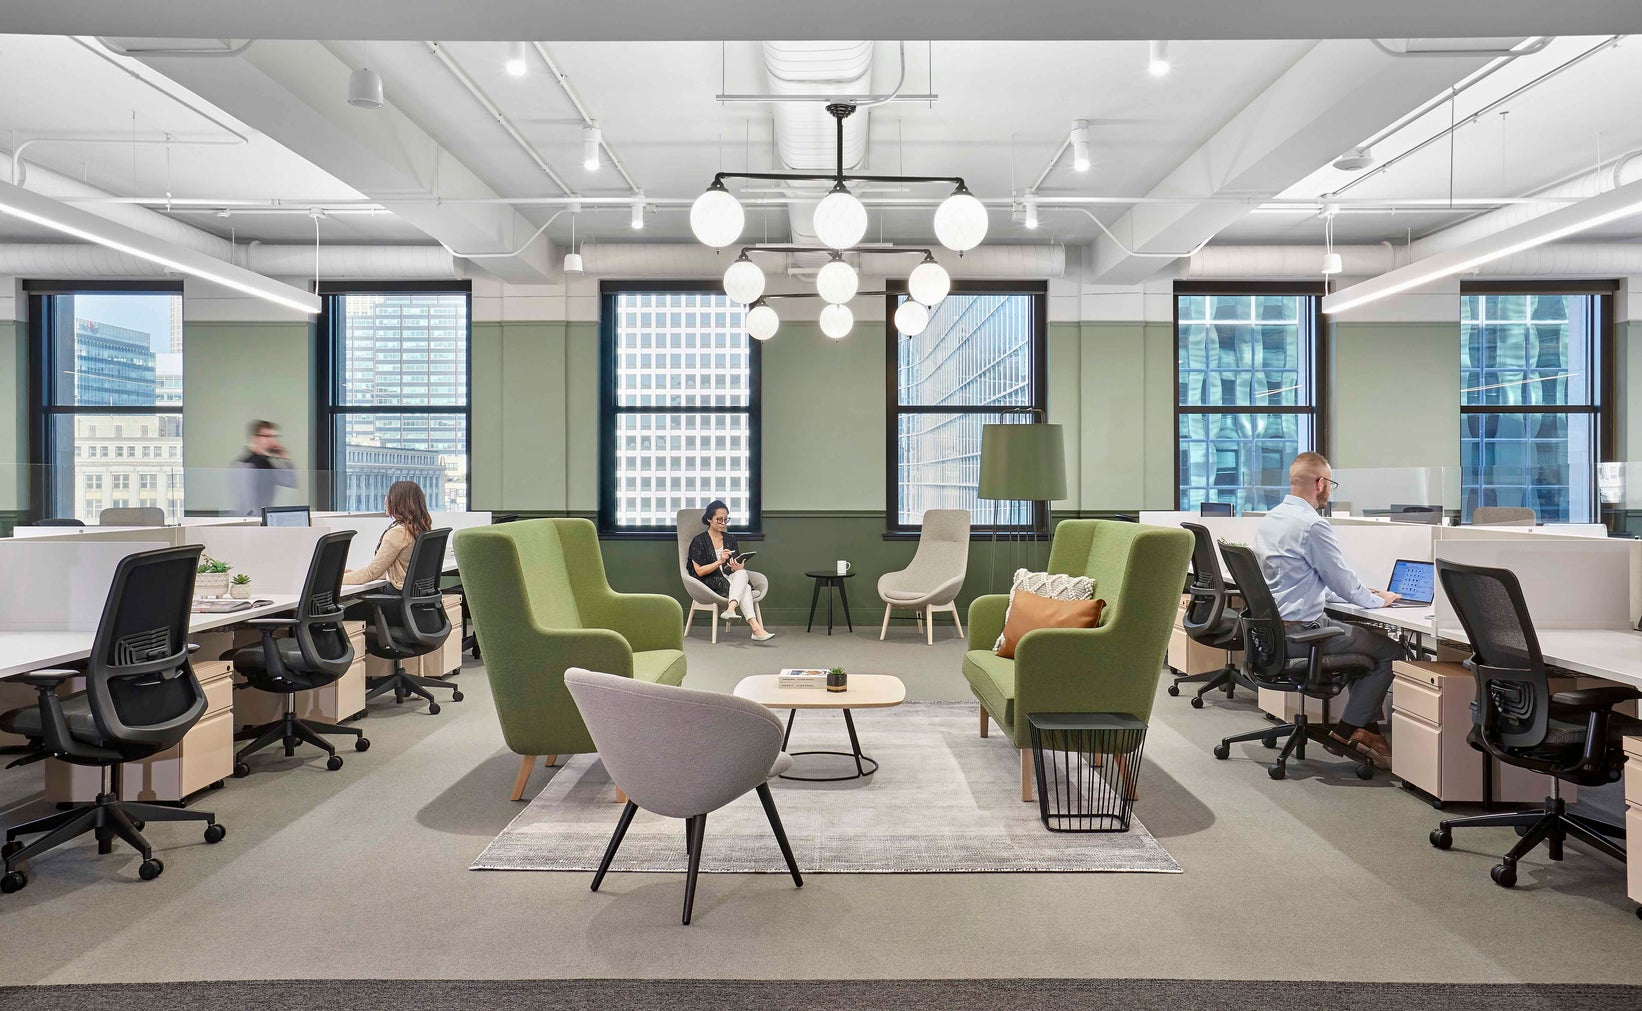 Office Chairs, Stools, and Desks